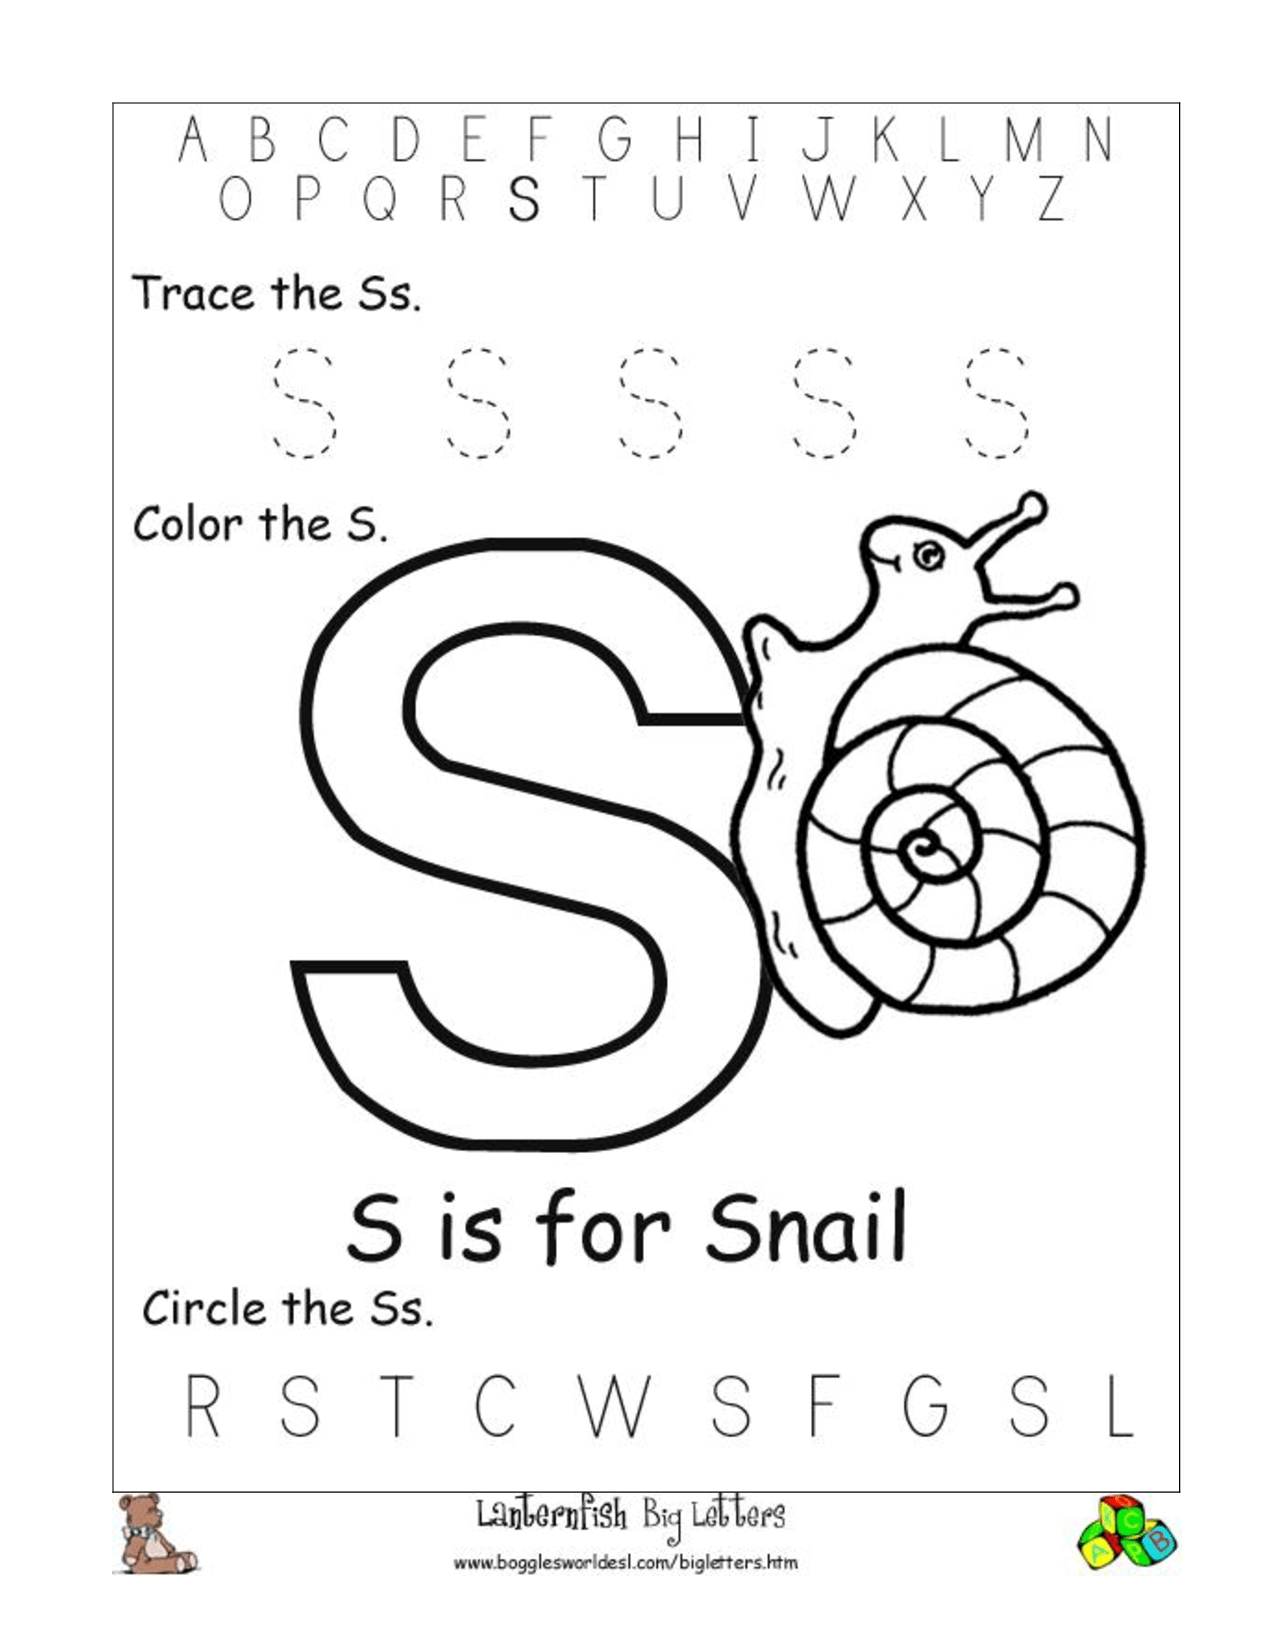 18 Best Images Of Alphabet Phonics Worksheets For Kindergarten